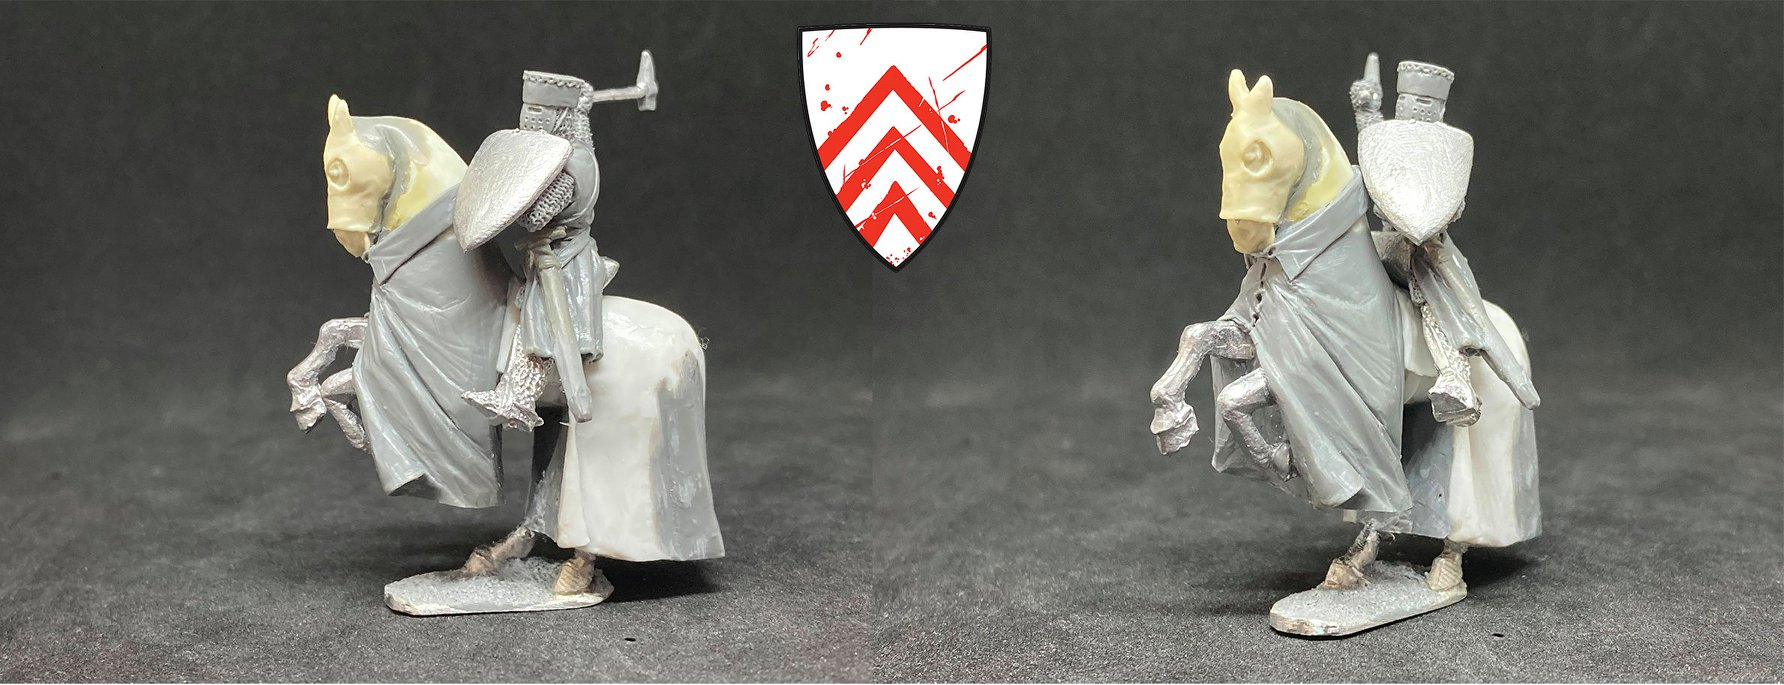 The Count of Perche Miniature - The Barons War